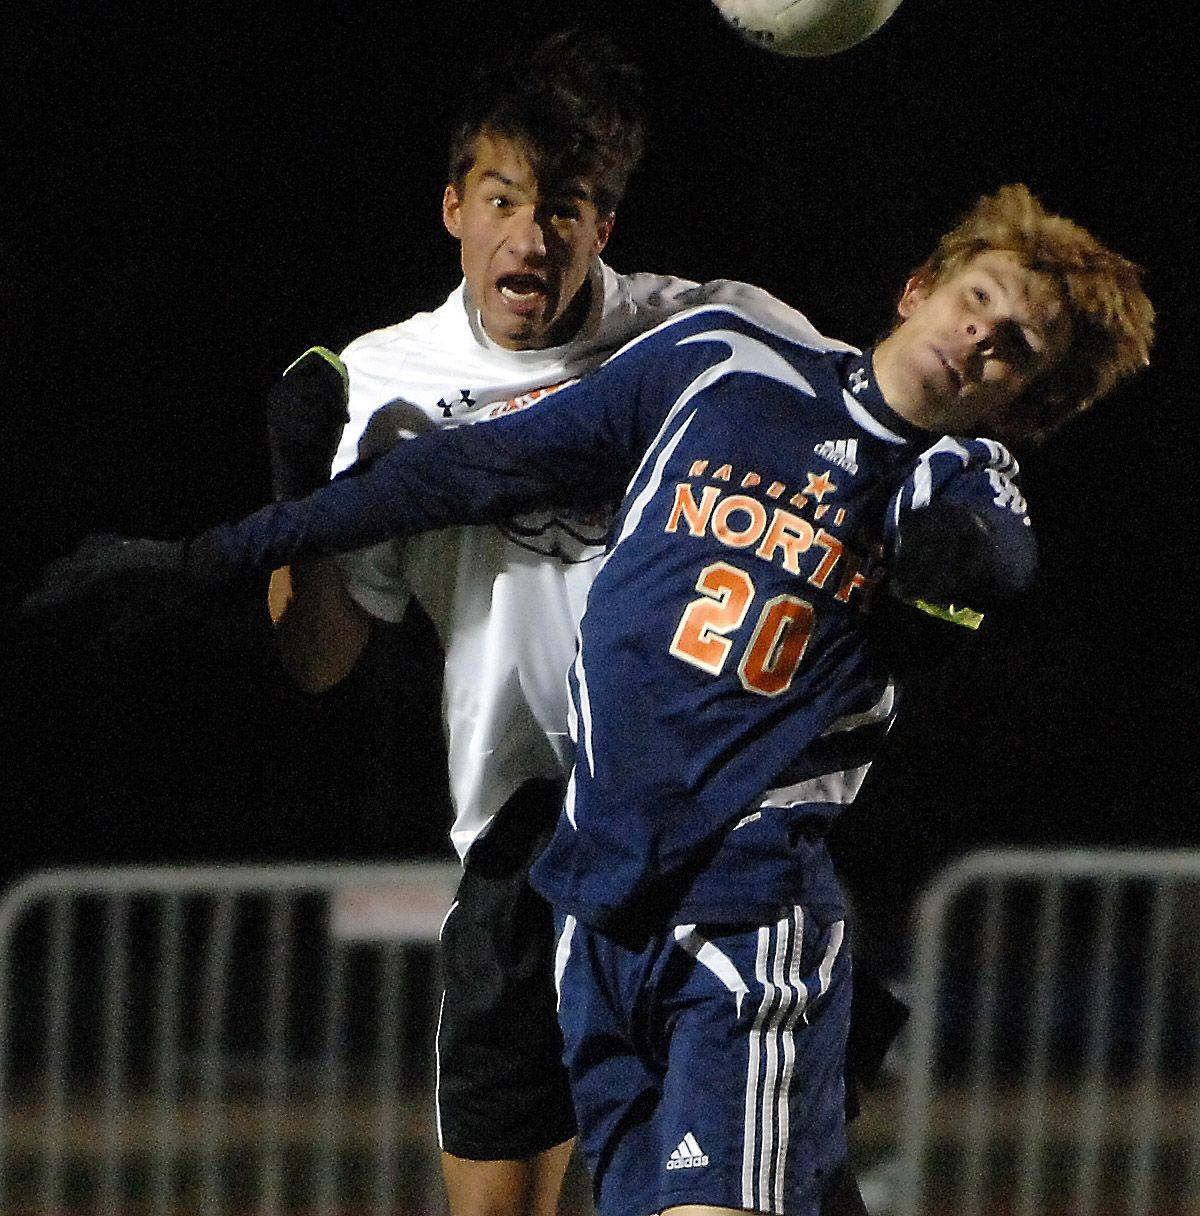 Naperville North's Lee Grander and Libertyville's Landon Eyre battle for a header during Friday's 3A state soccer semifinals at North Central College in Naperville.